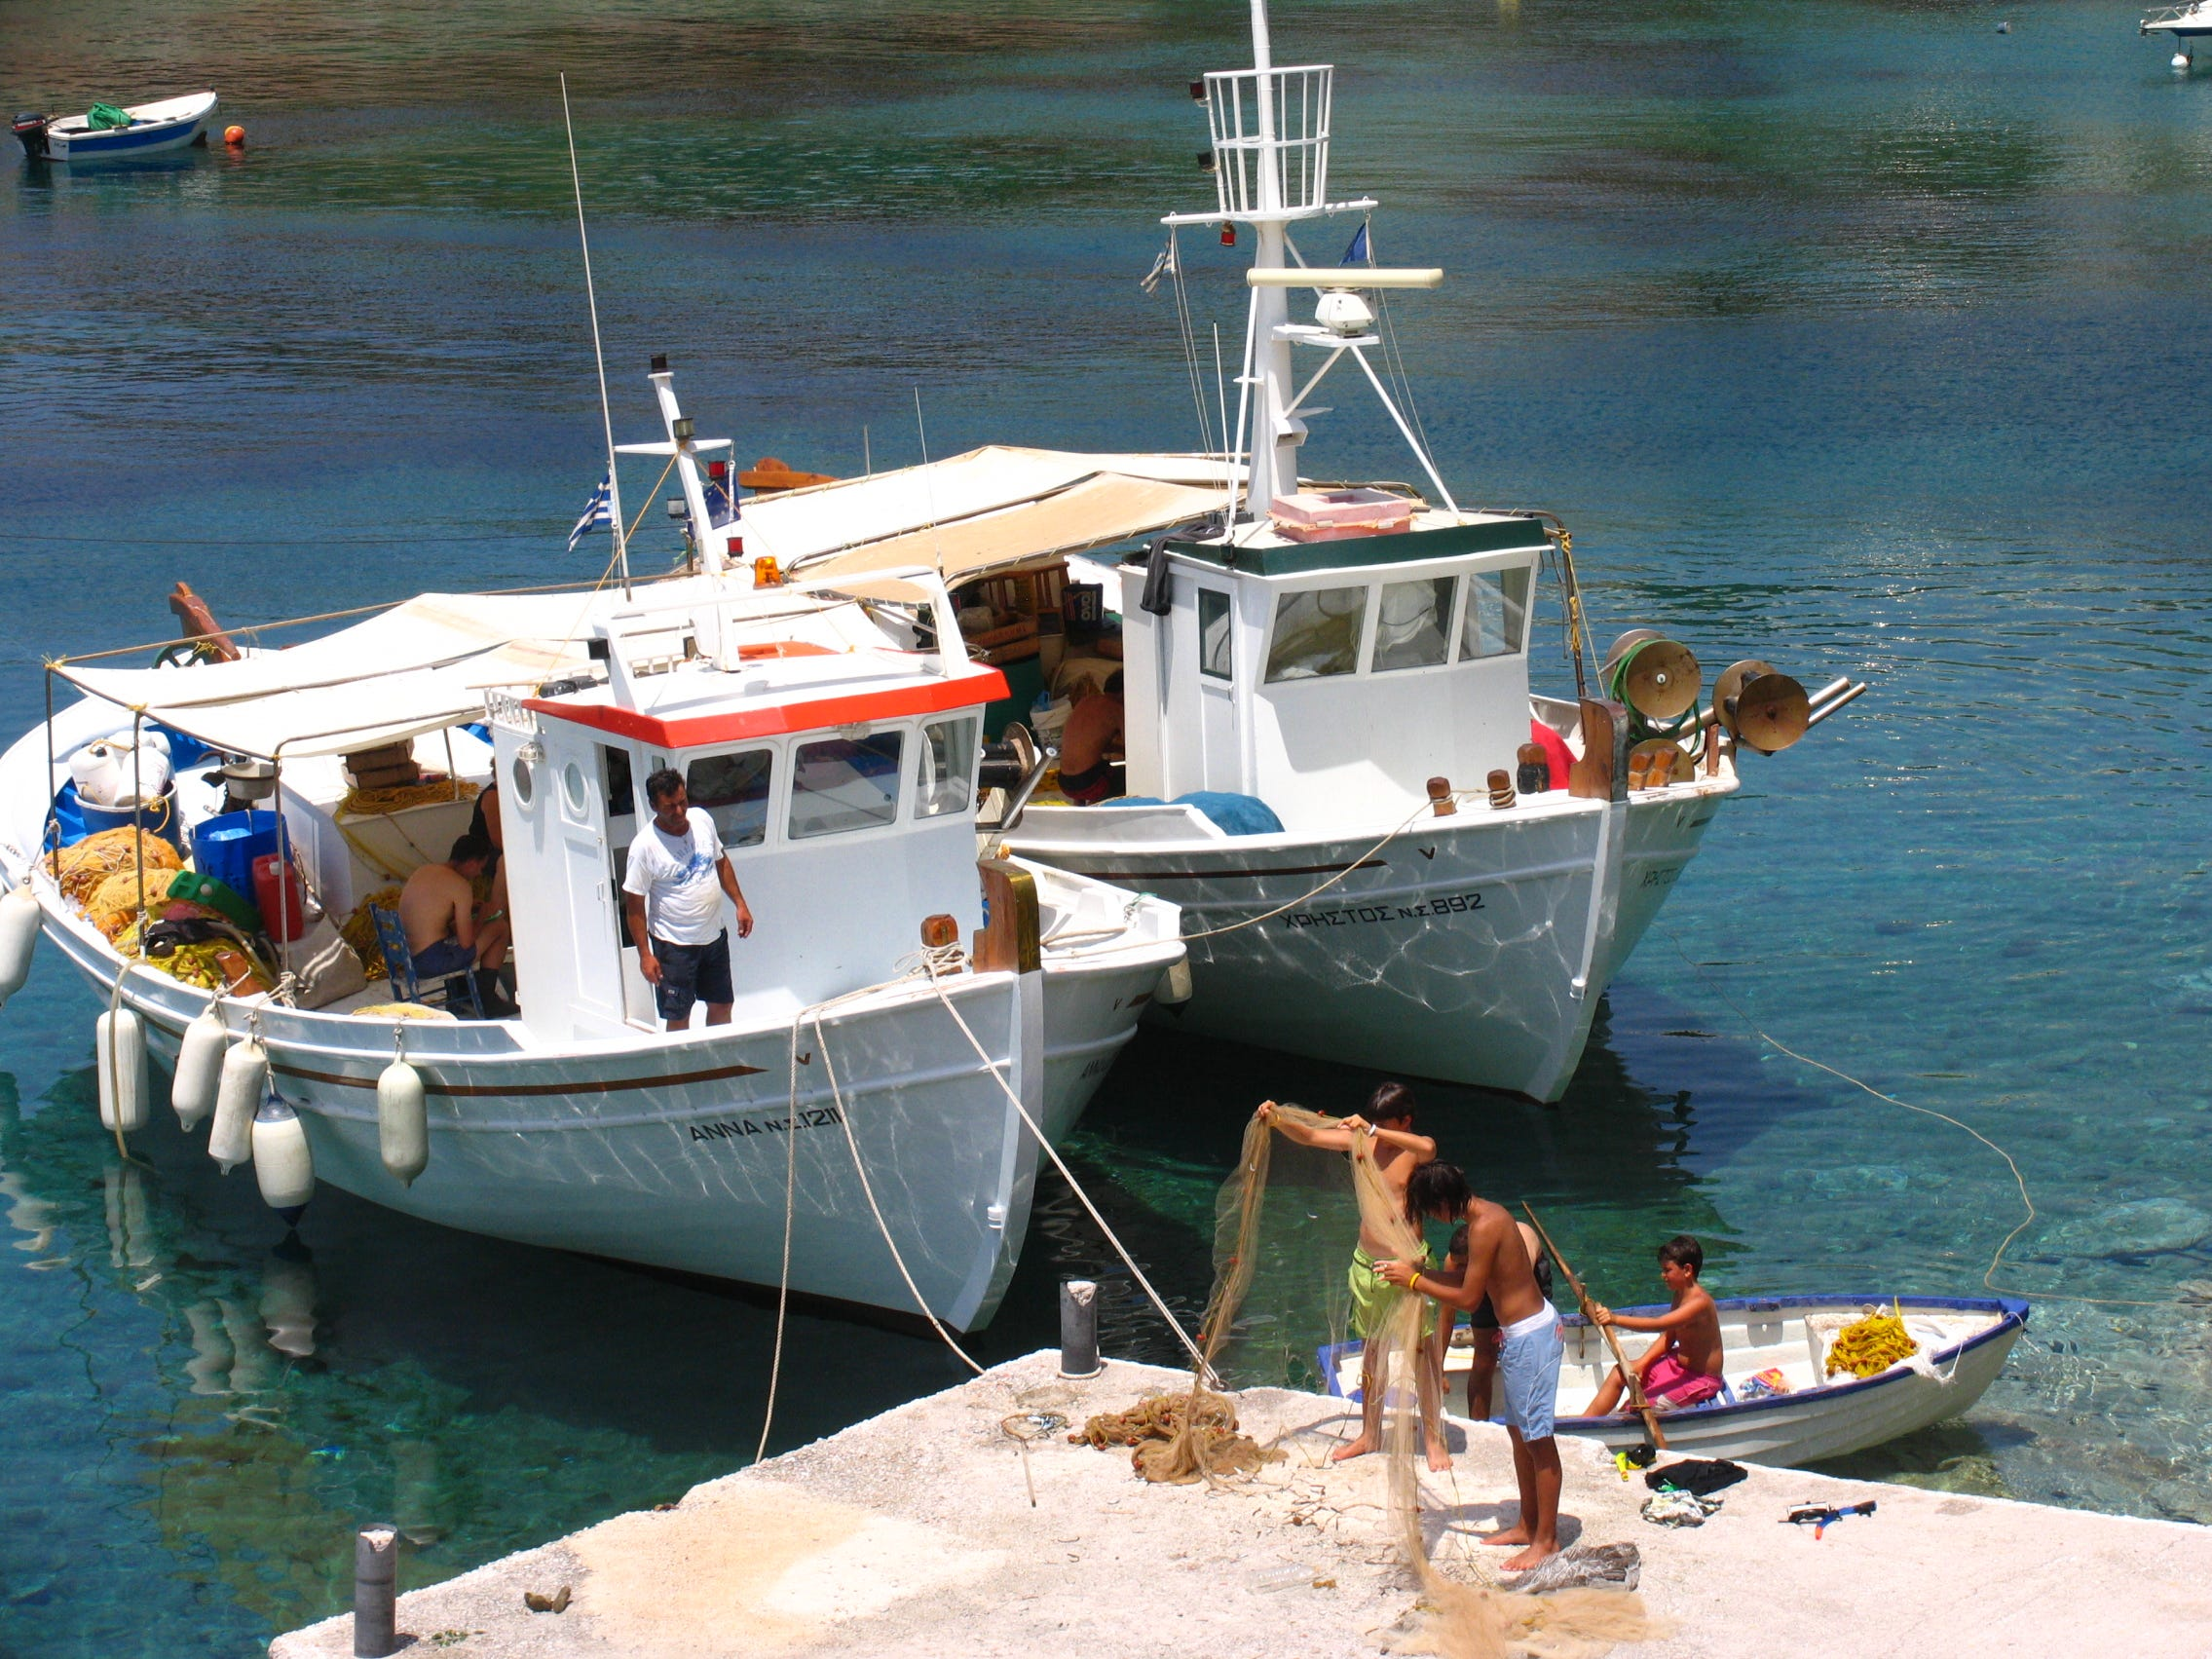 As on most islands in the Cyclades, fishing is a way of life. Small boats haul in the catch of the day and guide visitors on fishing trips.